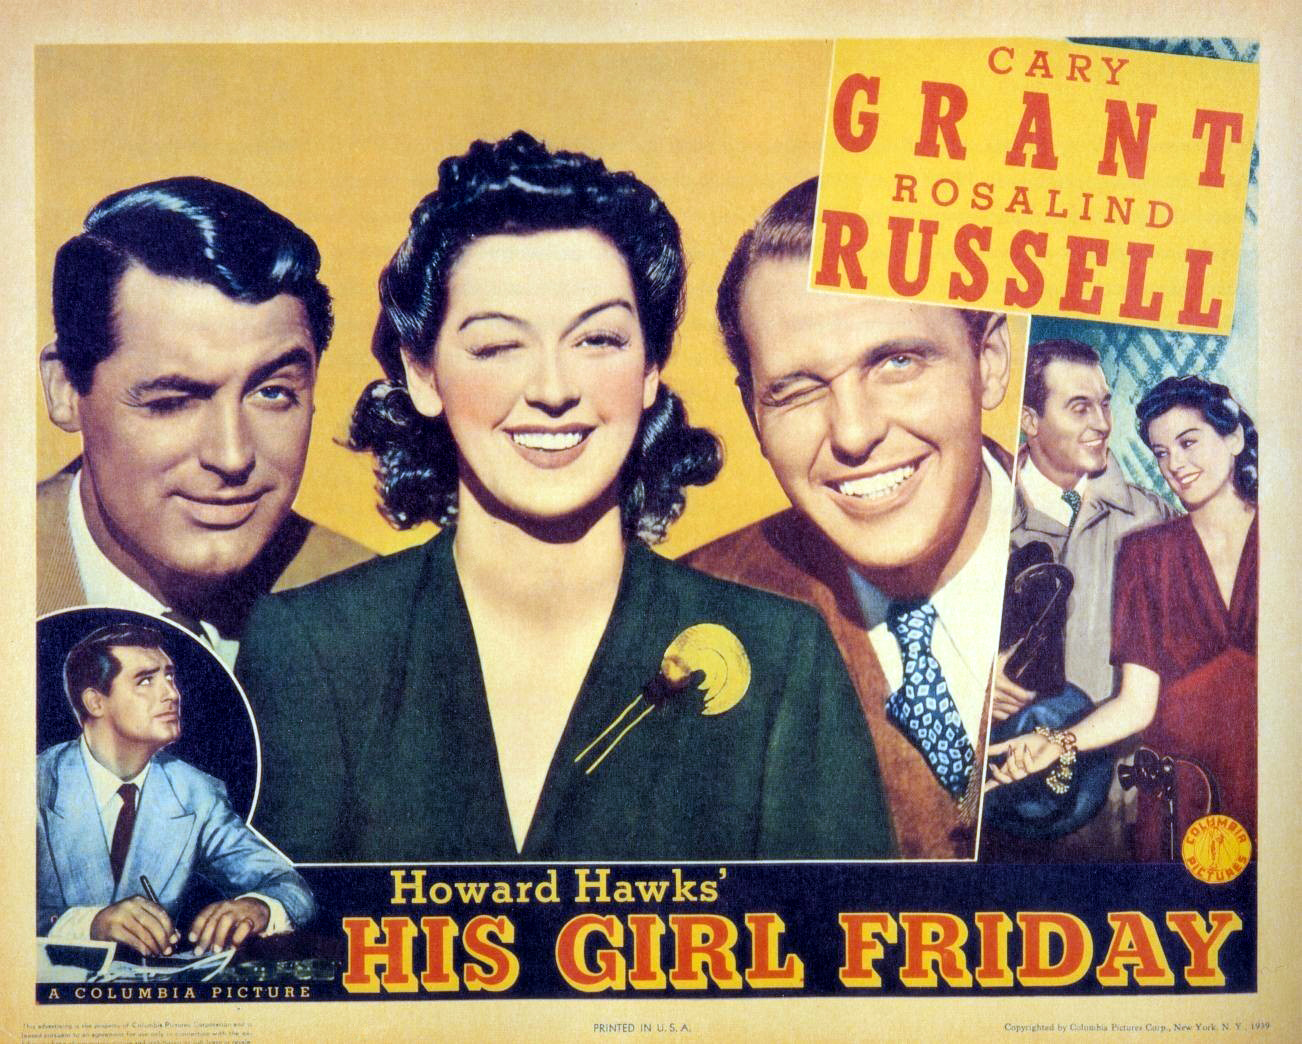 Rosalind Russel Cary Grant movie poster print 2 His Girl Friday 1940